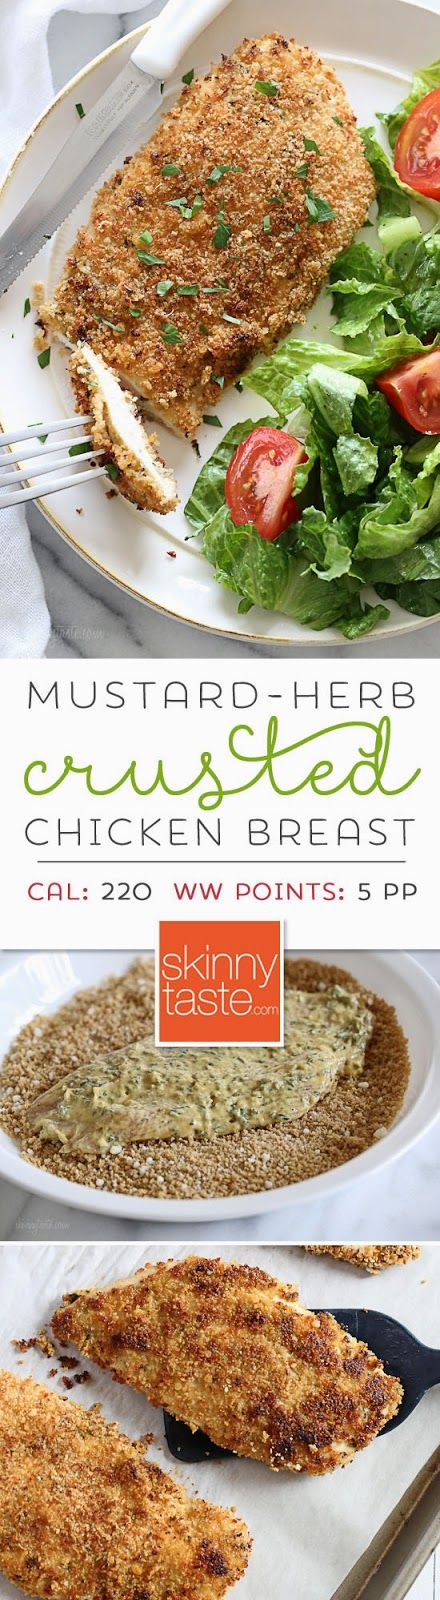 Mustard Herb Crusted Chicken Breasts – easy, light and delicious! | skinnytaste.com @skinnytaste